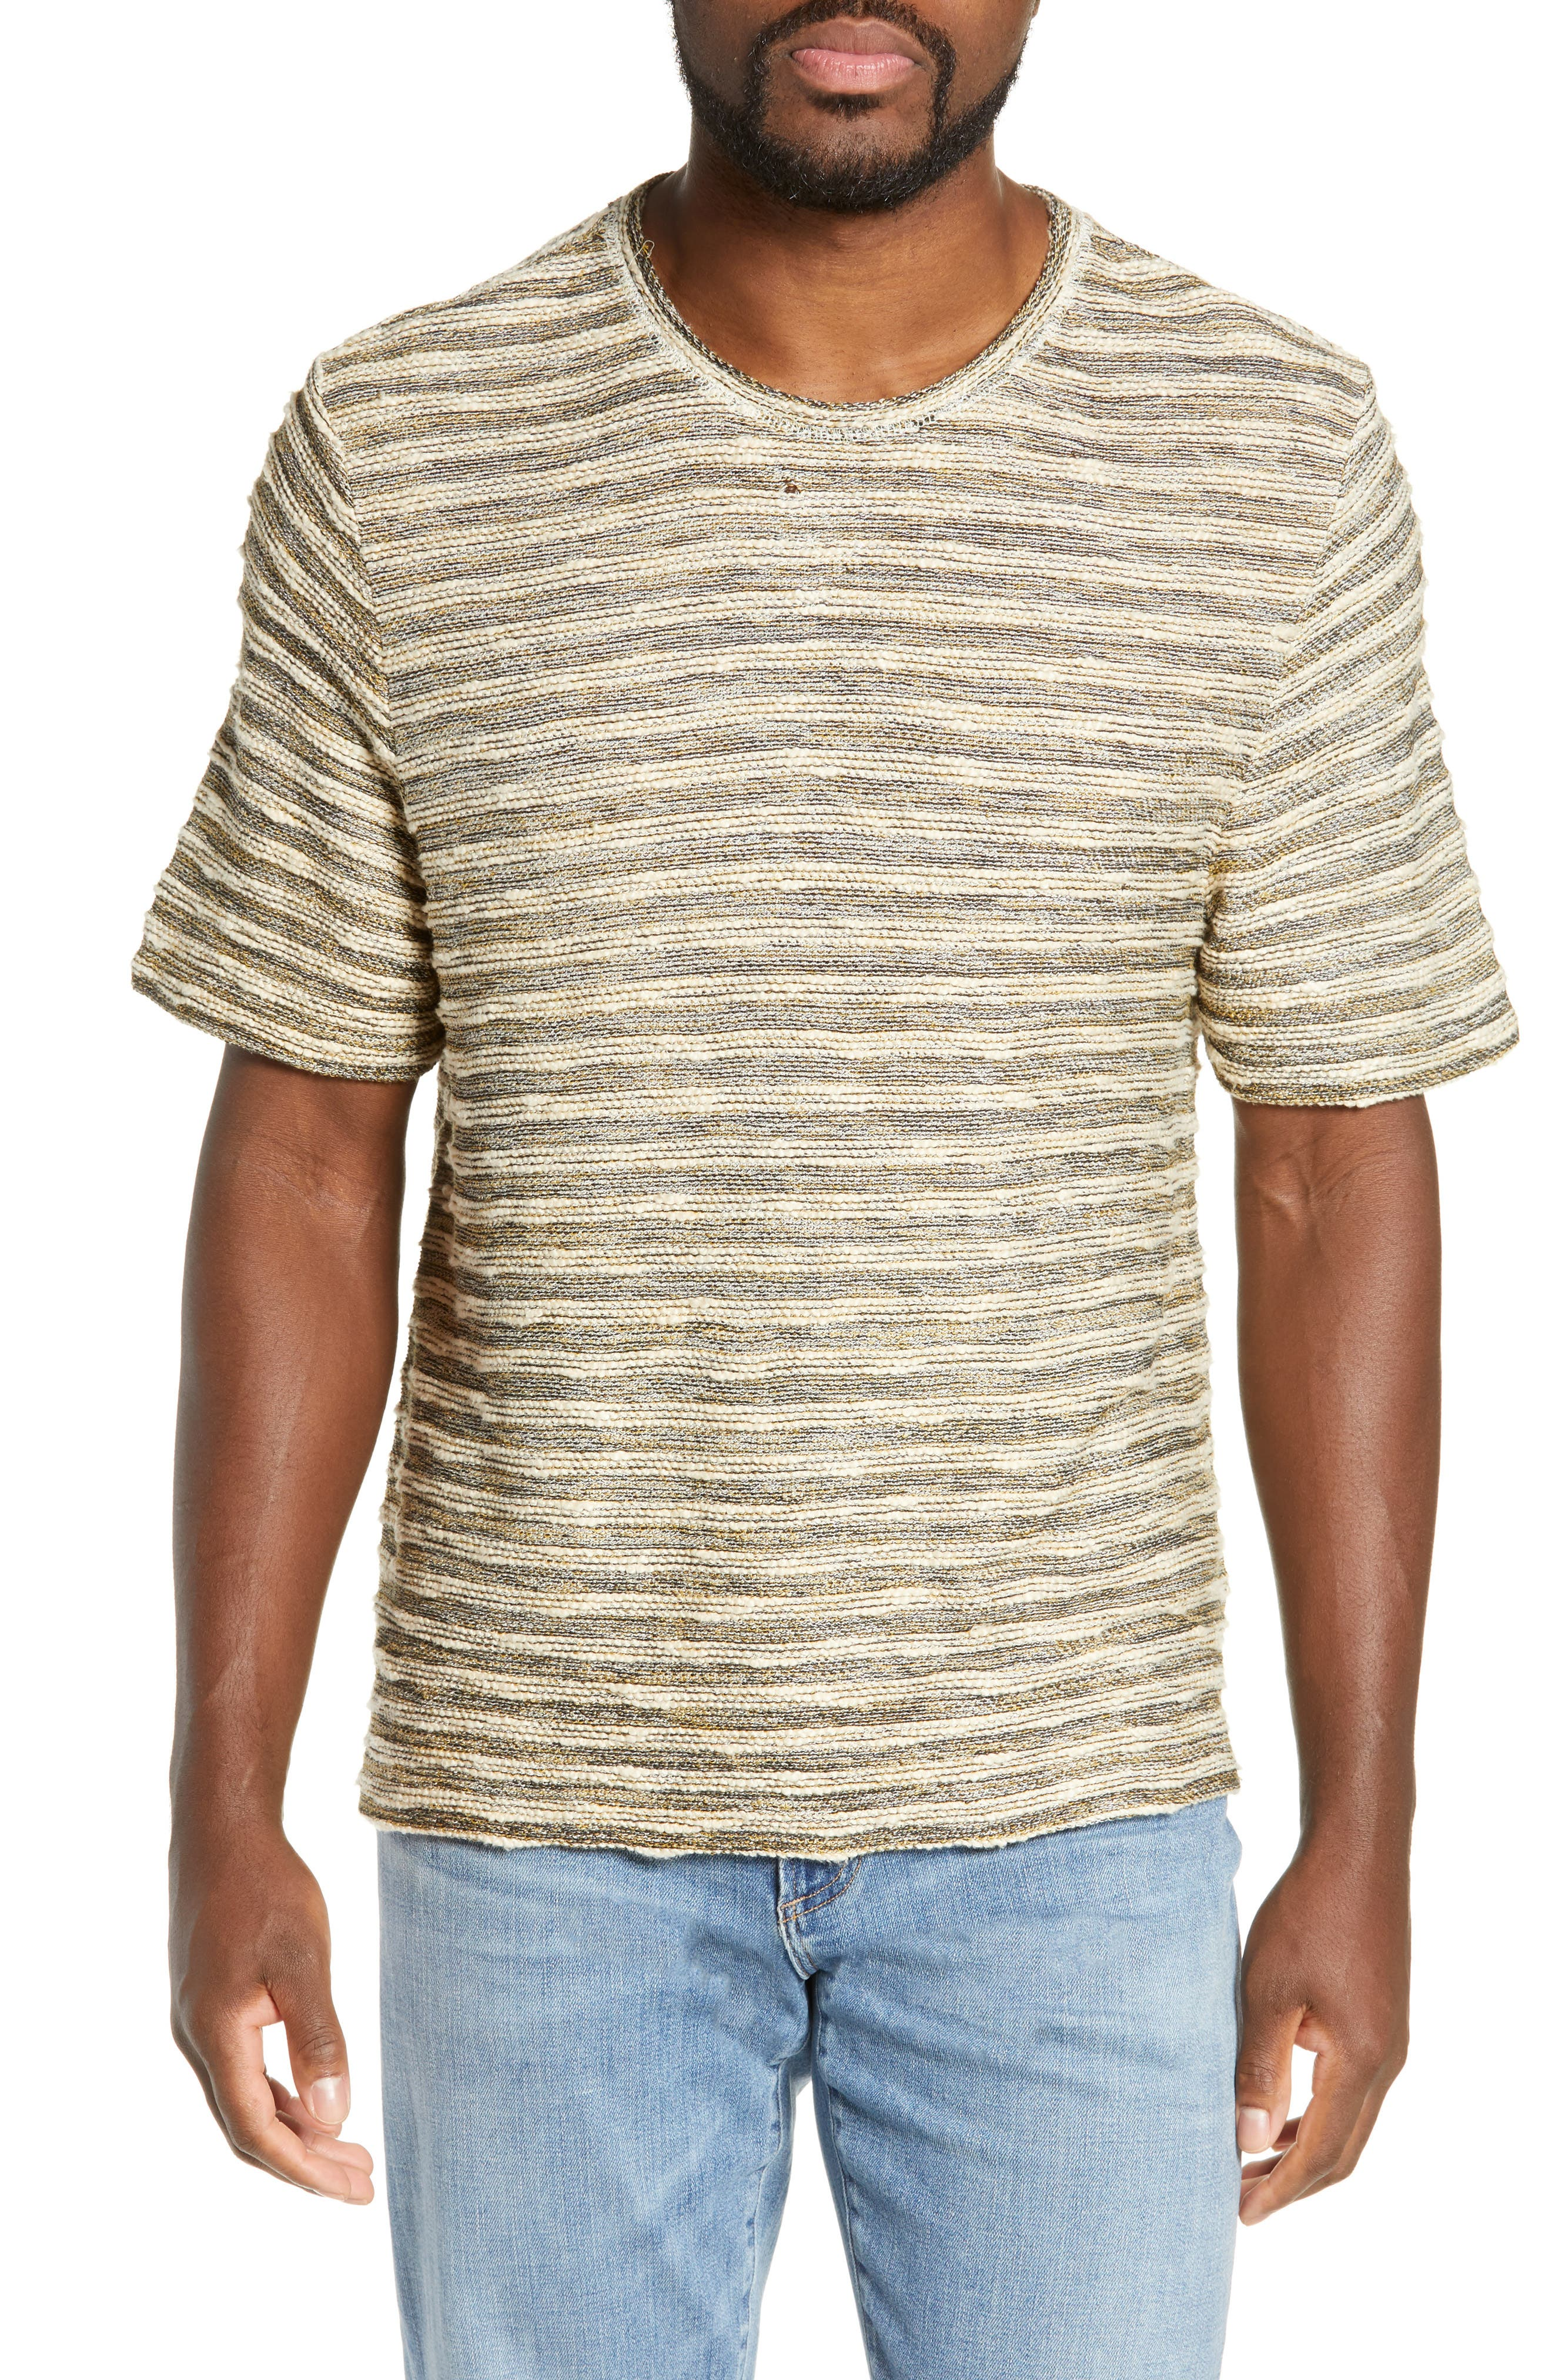 FRYE, Stripe Jacquard Regular Fit T-Shirt, Main thumbnail 1, color, WHITE